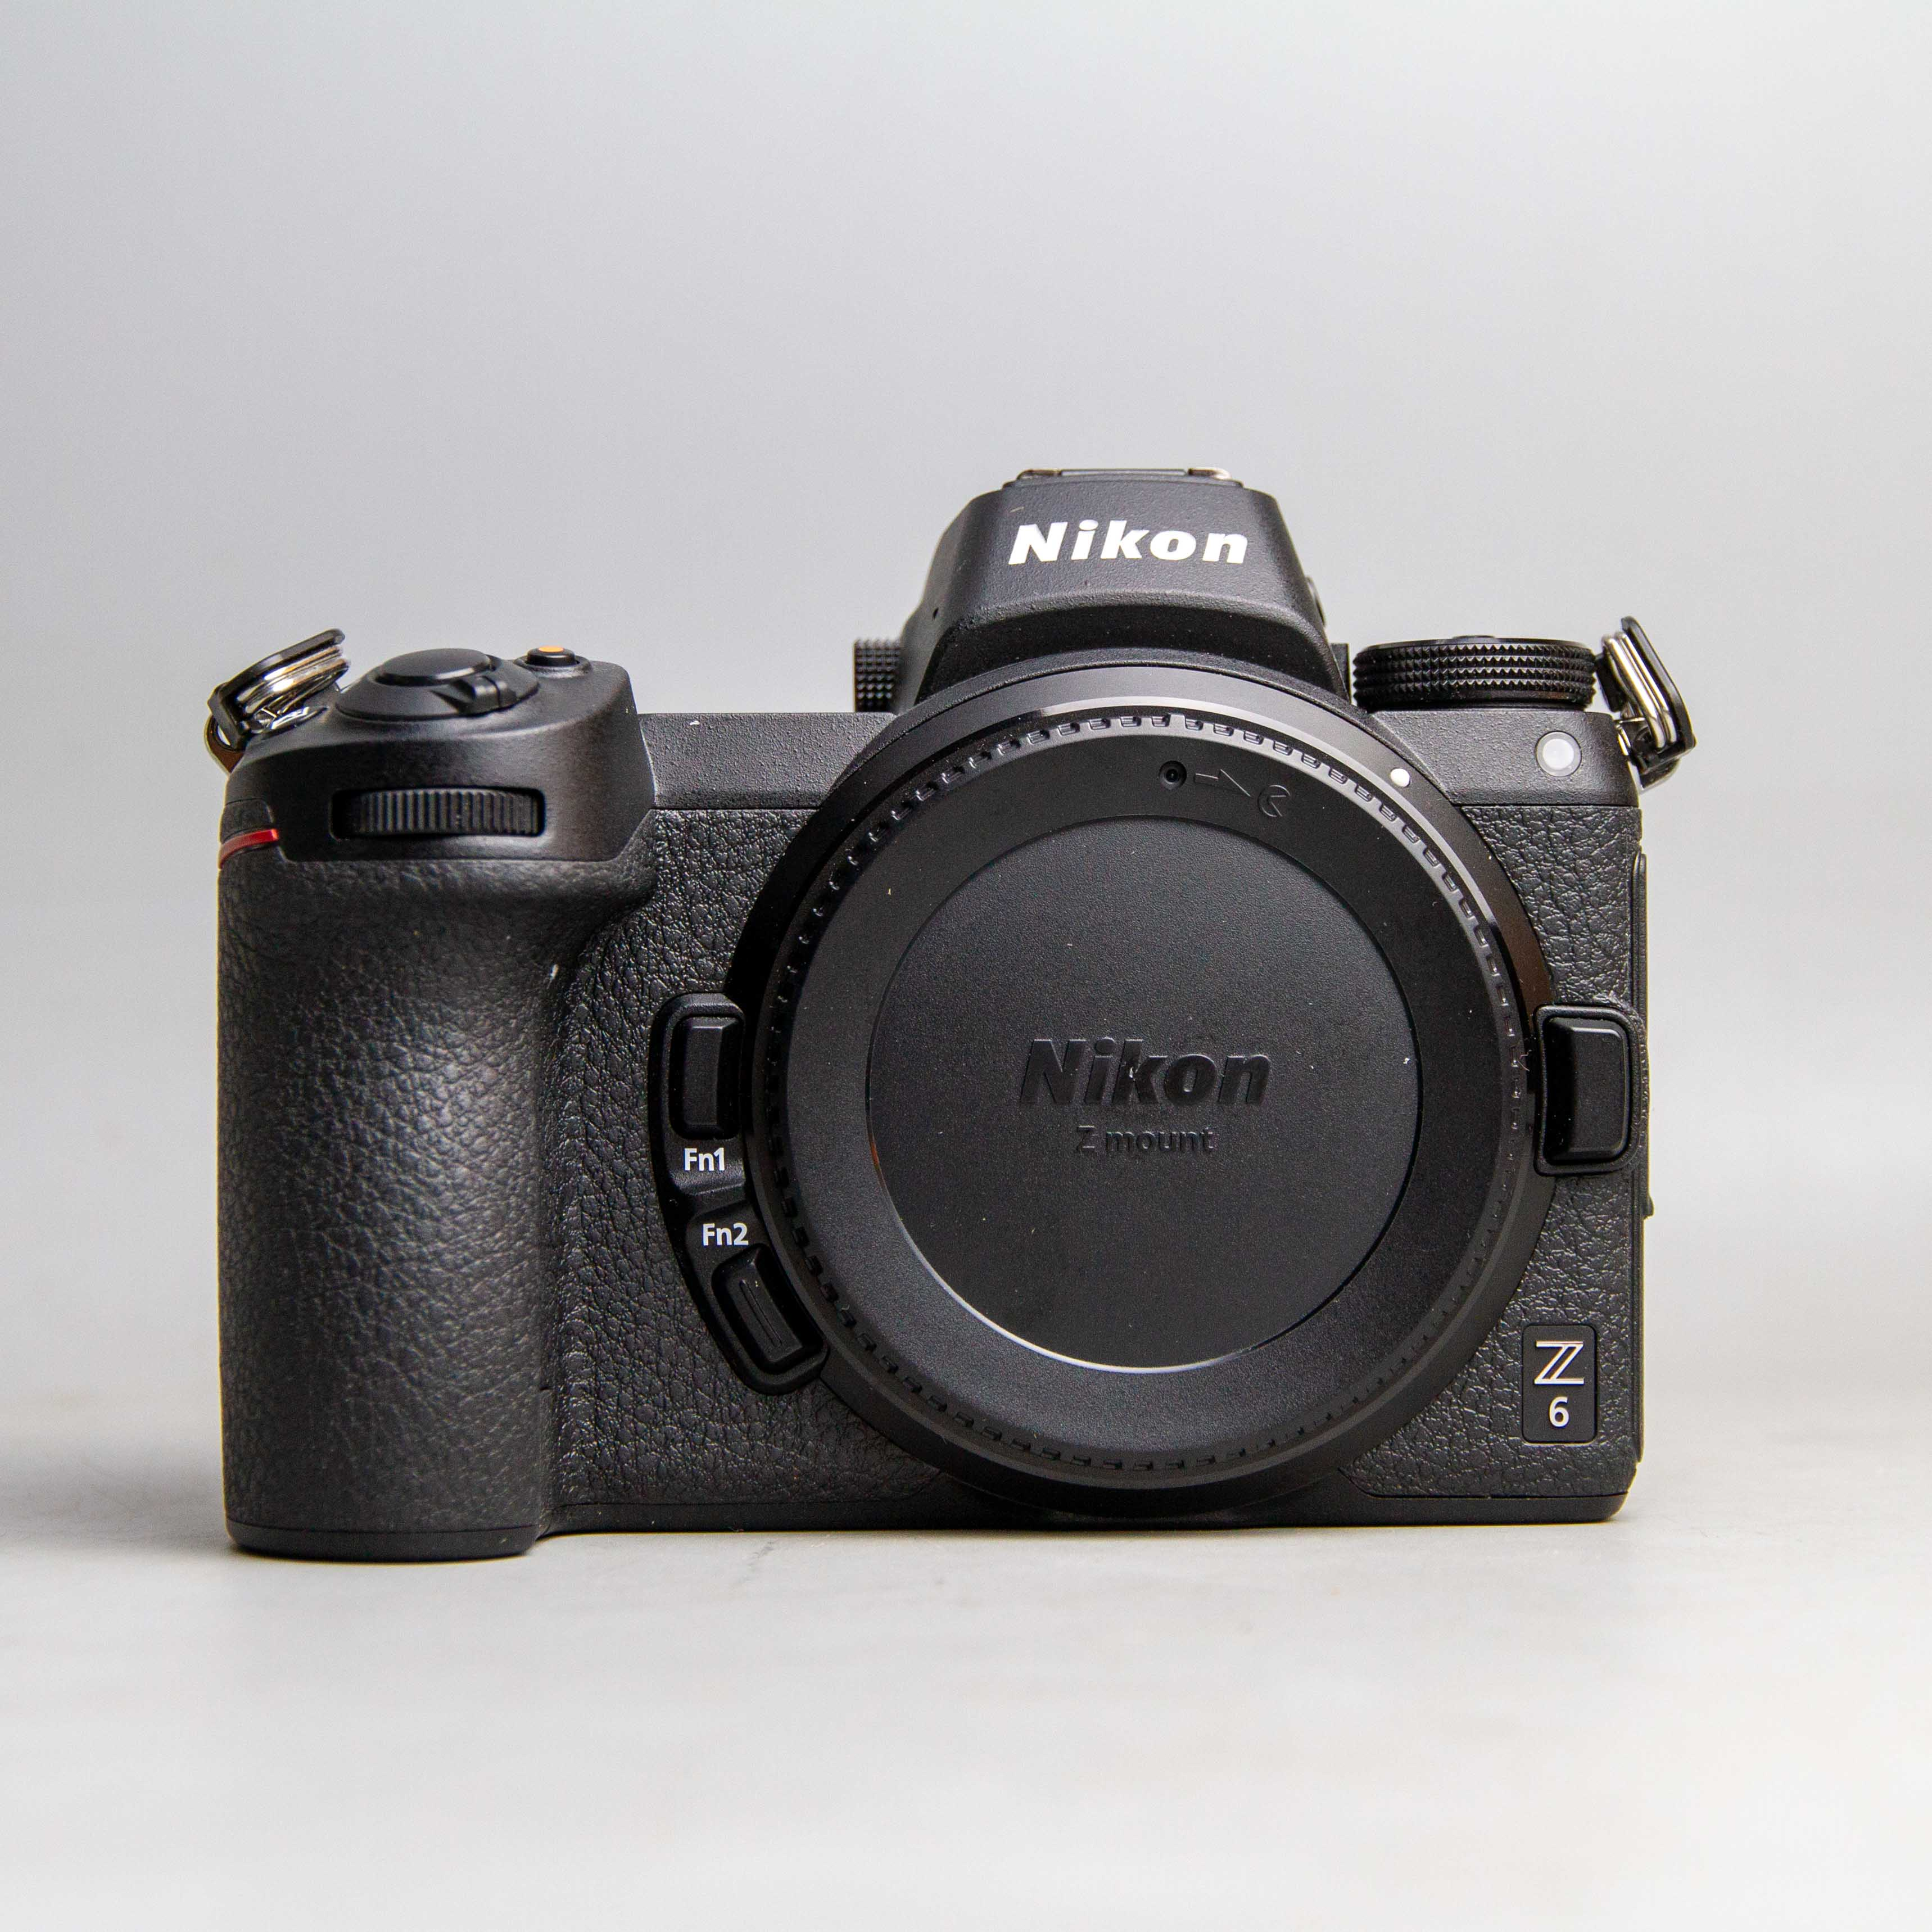 nikon-z6-body-likenew-fullbox-700-shots-18709